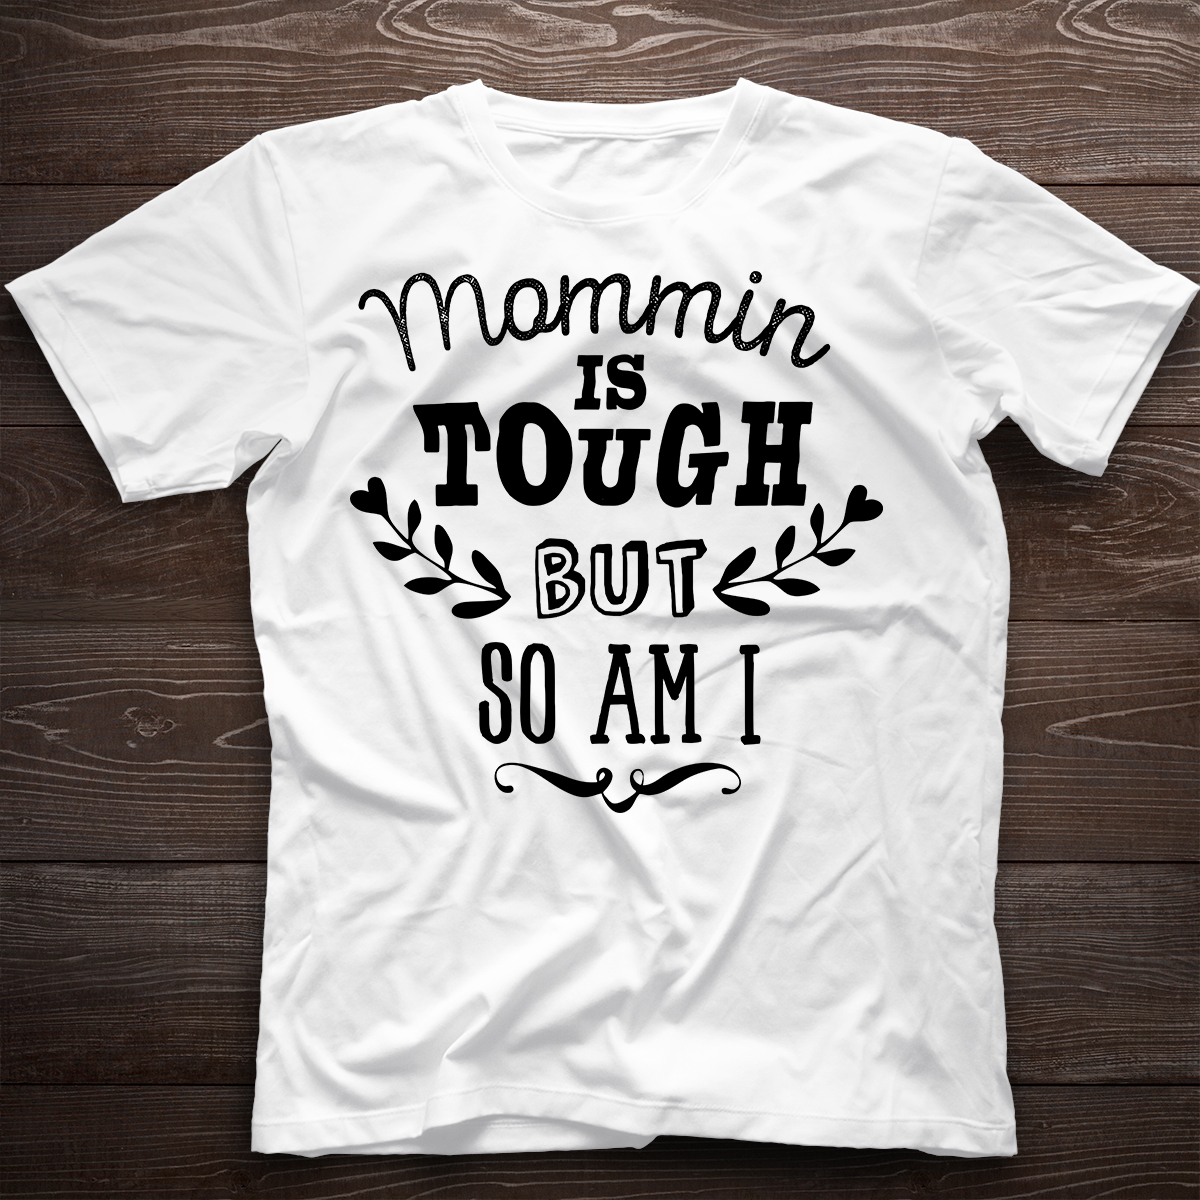 Click this tee to shop I Speak Mom's T Shirts on Amazon!